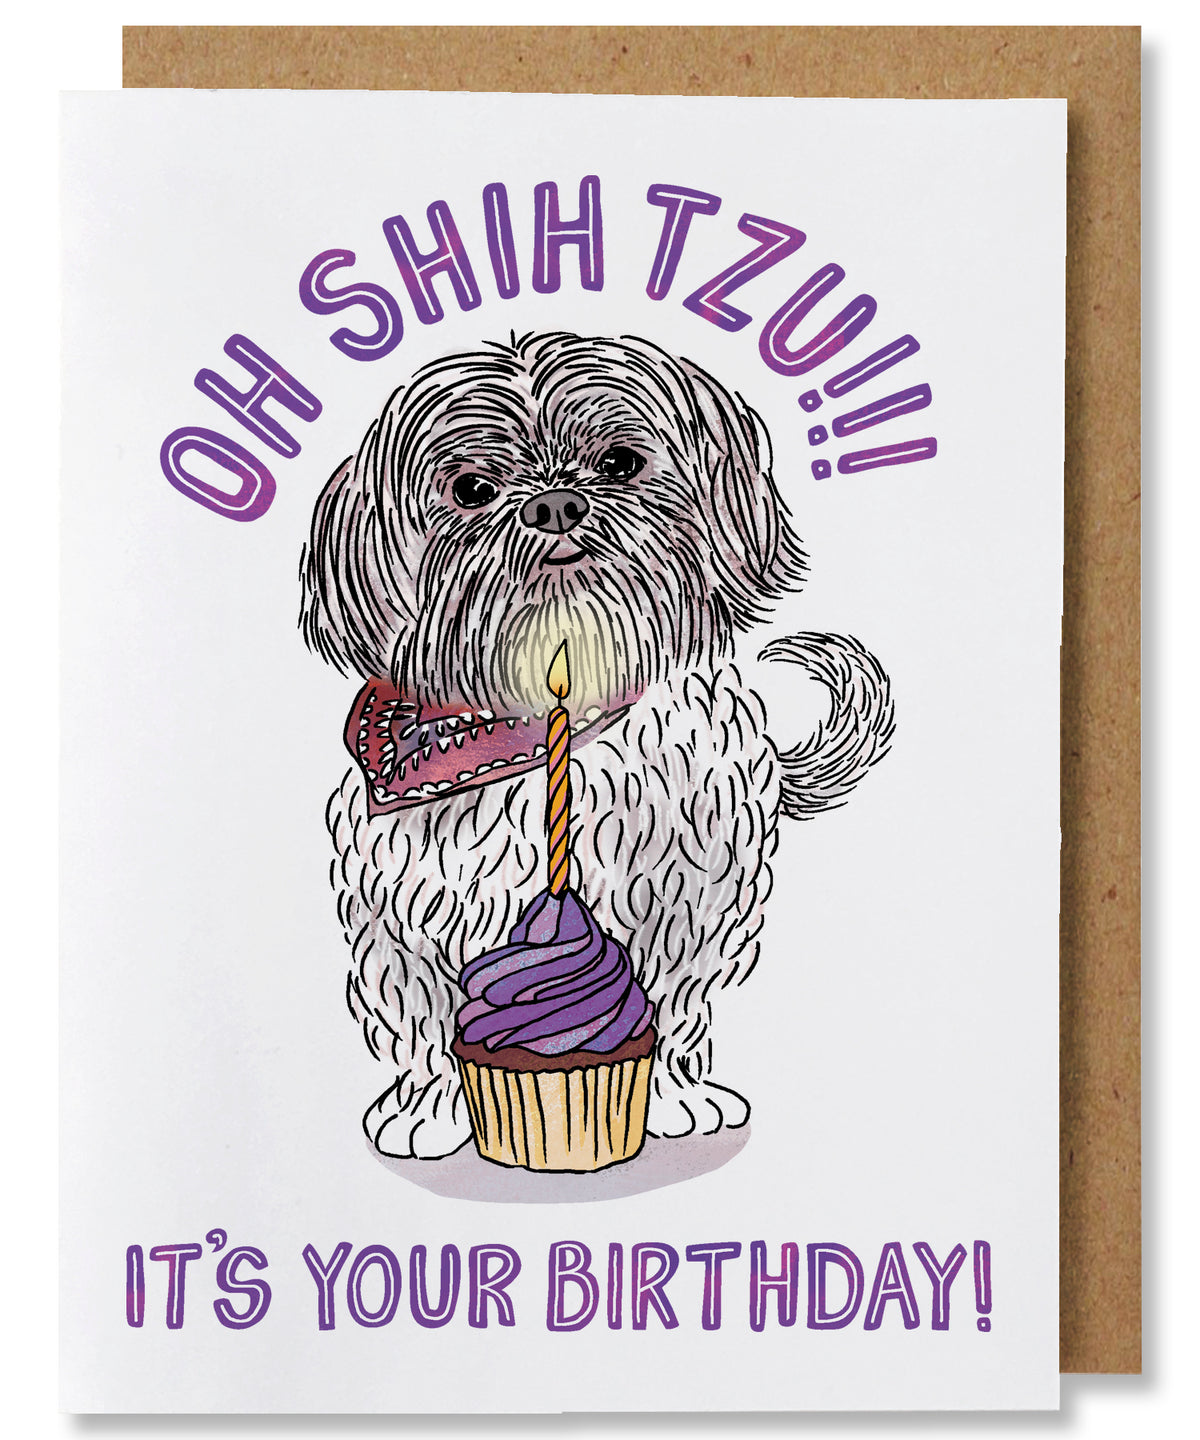 Oh Shih Tzu Birthday Card - Heart of the Home PA